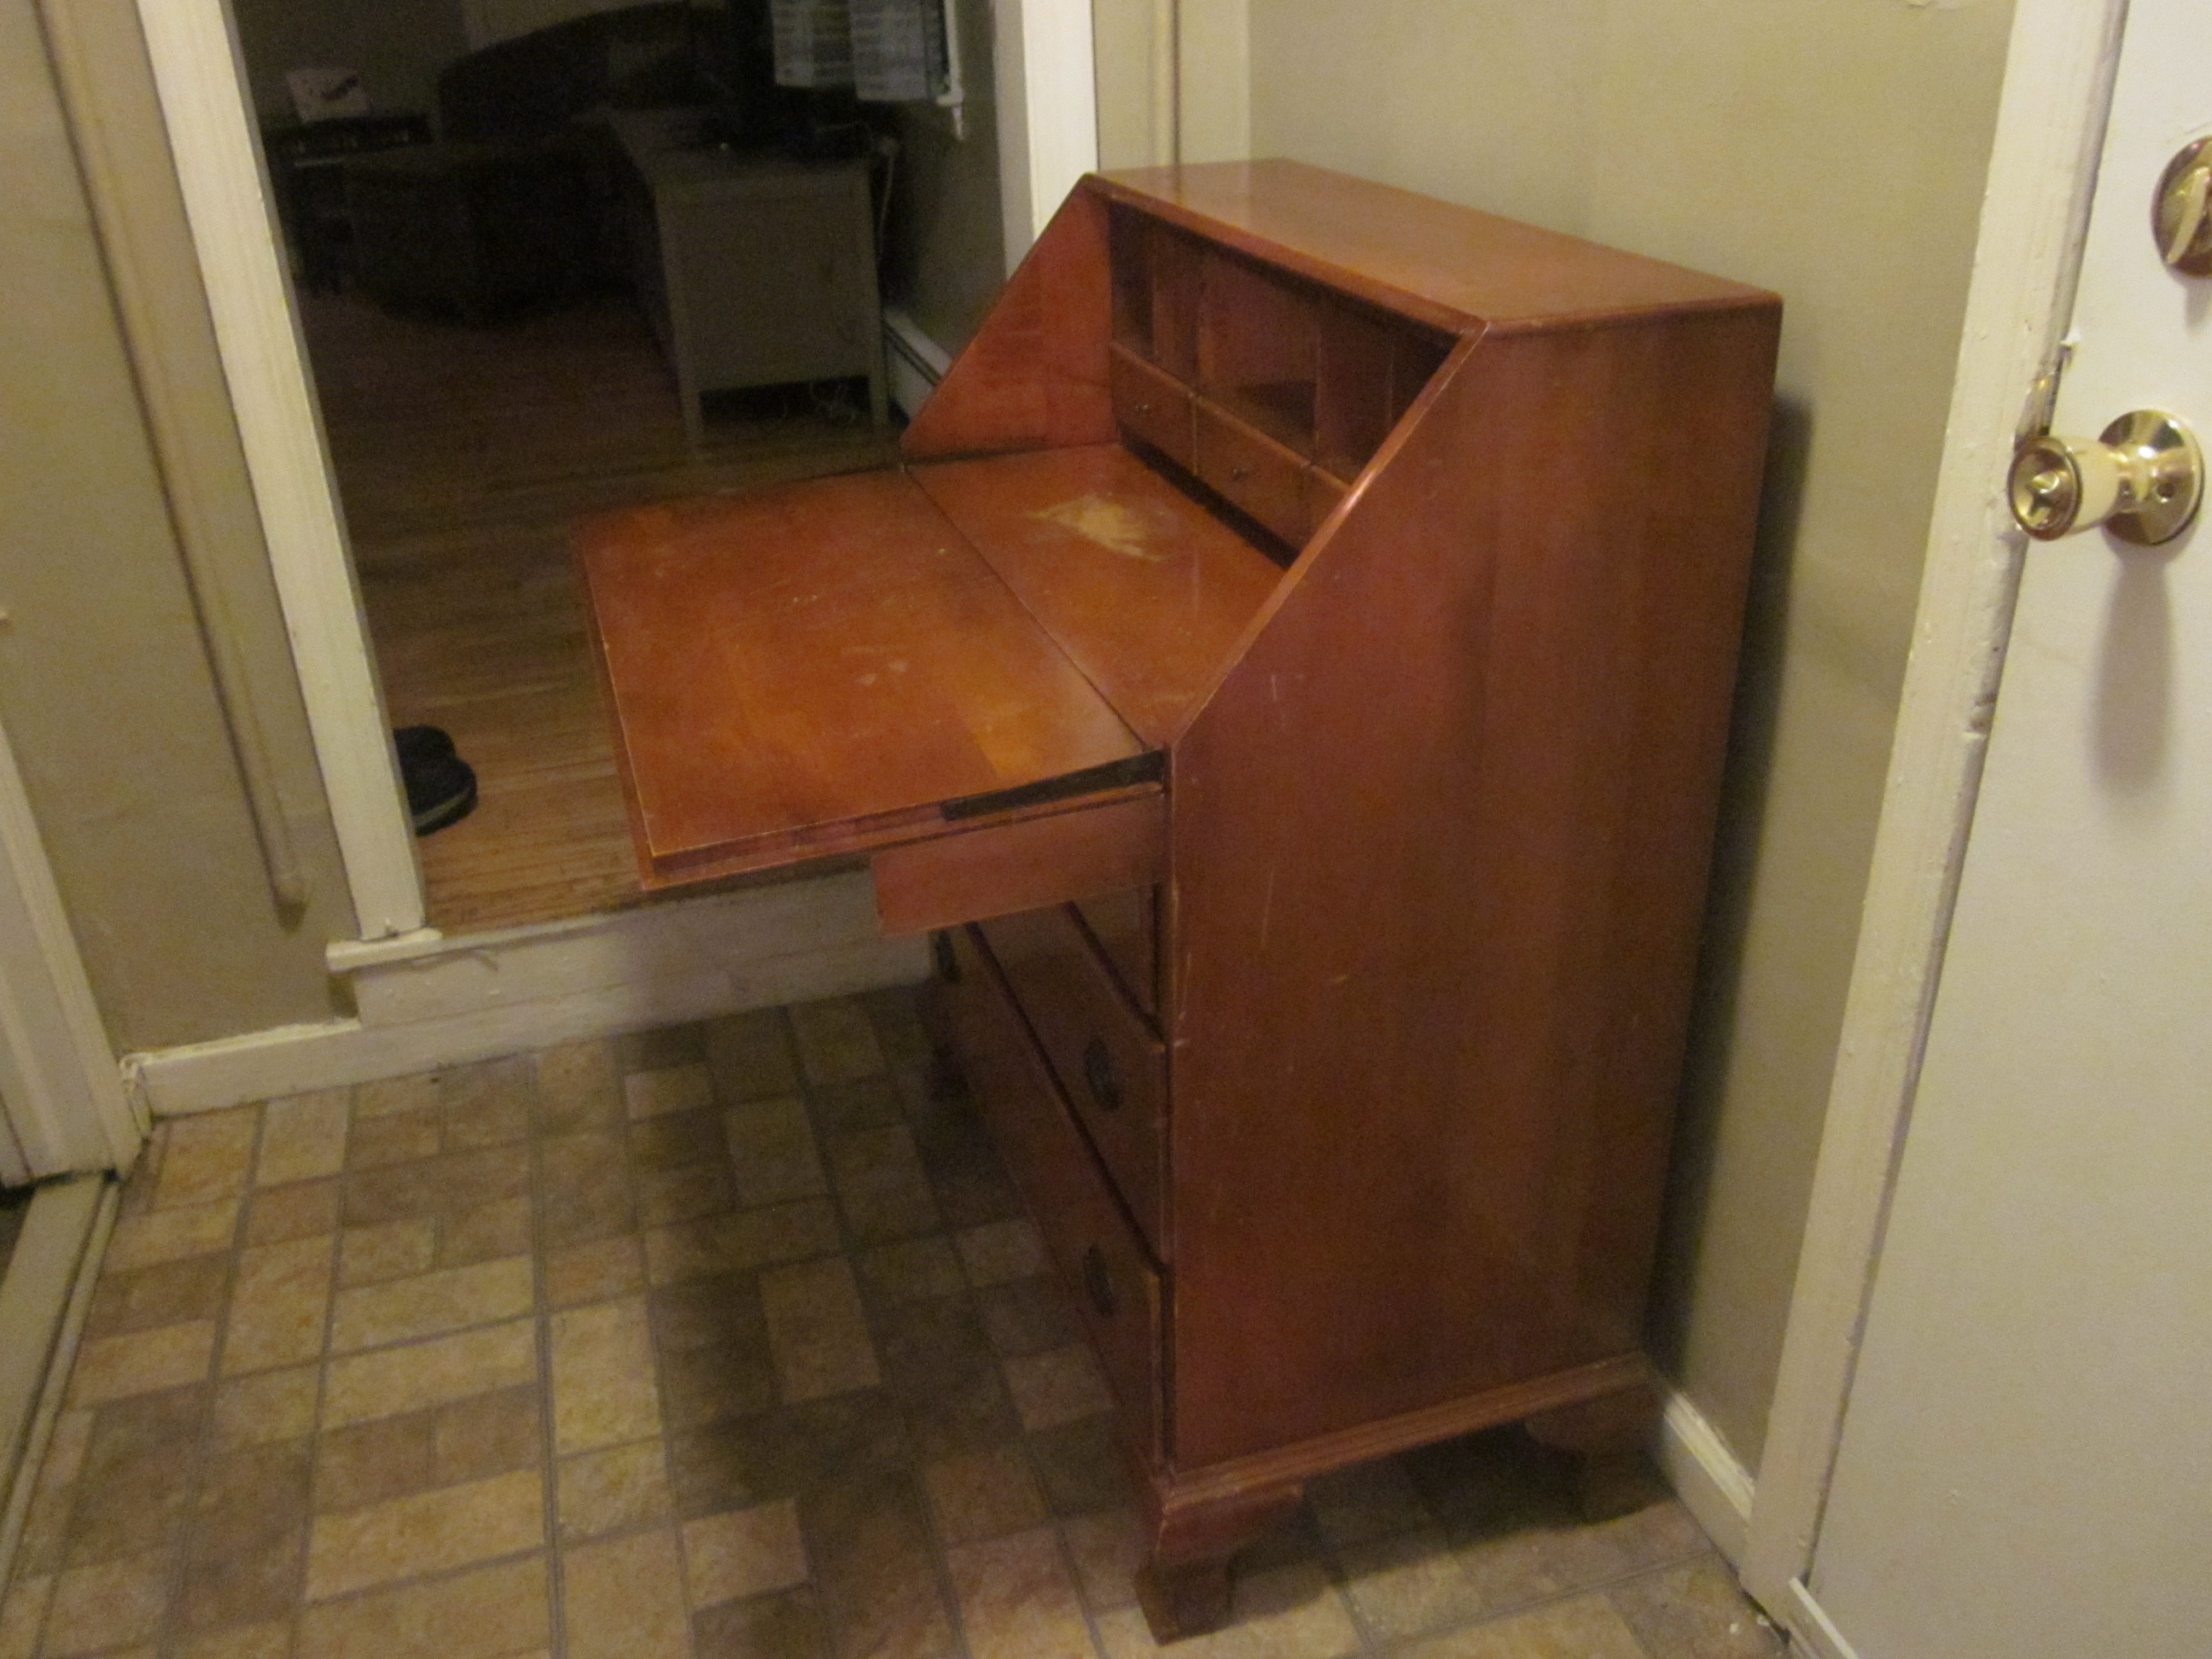 Secretary S Desk Monitor Furniture Company Jamestown Ny Antique Appraisal Instappraisal